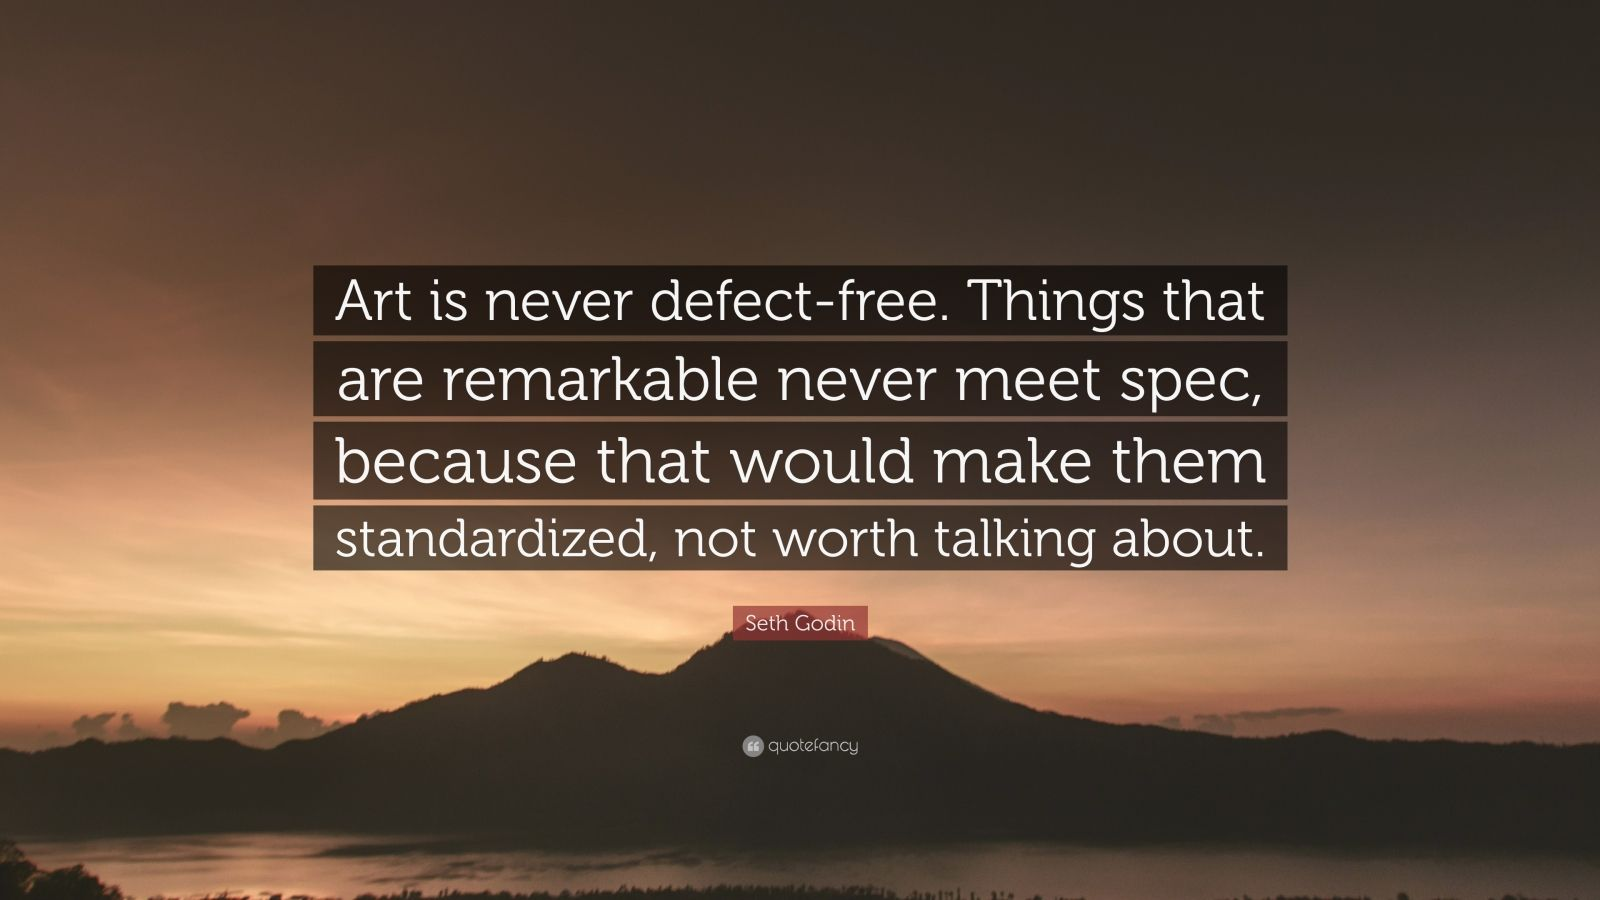 """Seth Godin Quote: """"Art is never defect-free. Things that are remarkable never meet spec, because that would make them standardized, not worth talking about."""""""